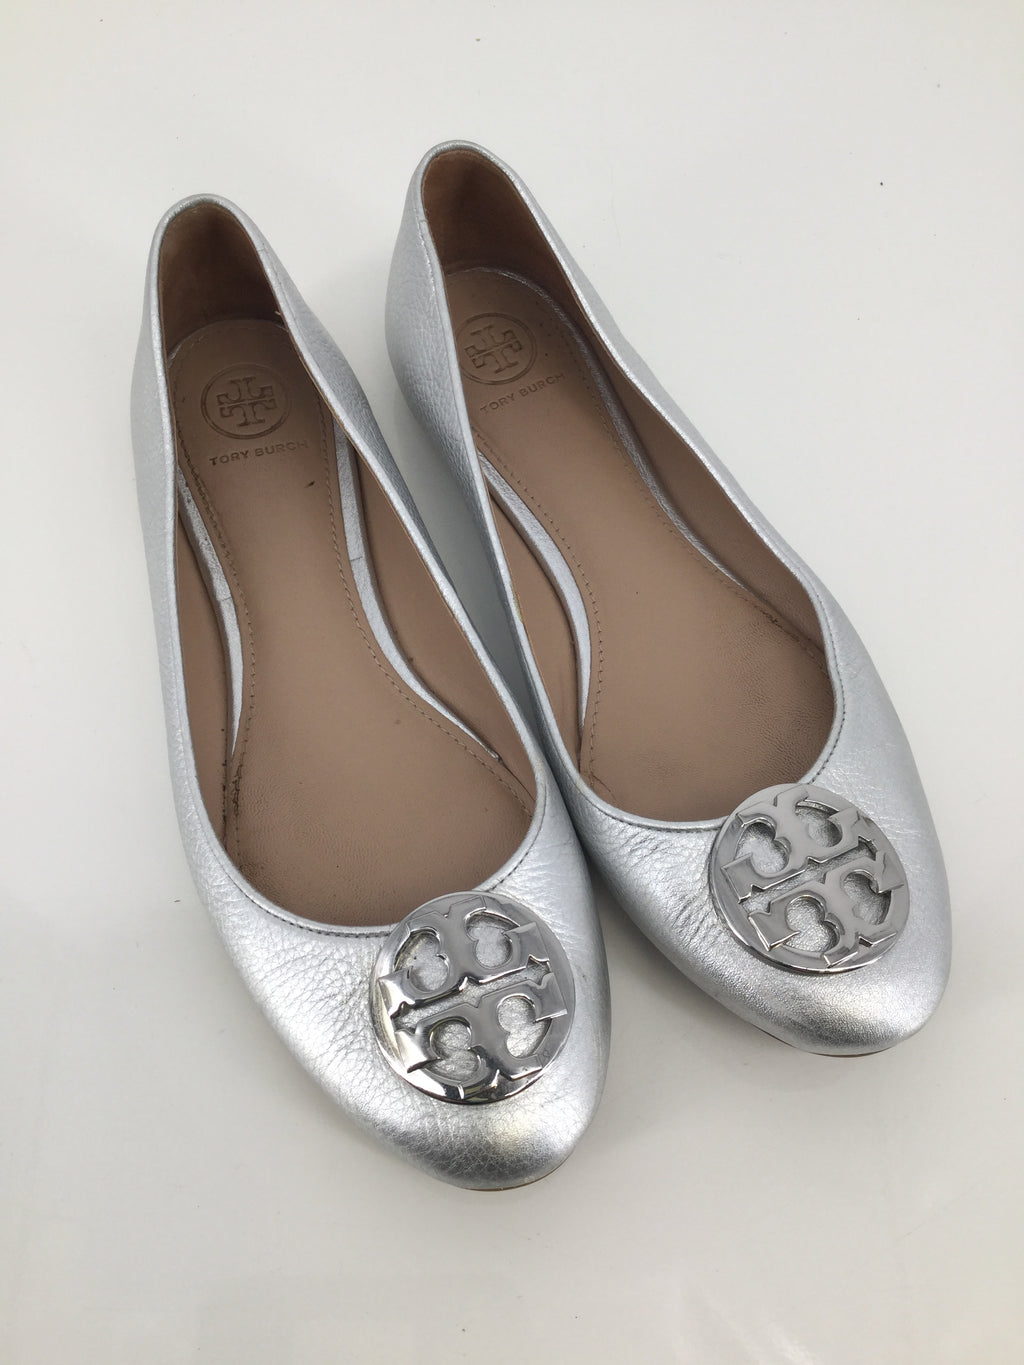 Tory Burch Silver Flats Size 8.5